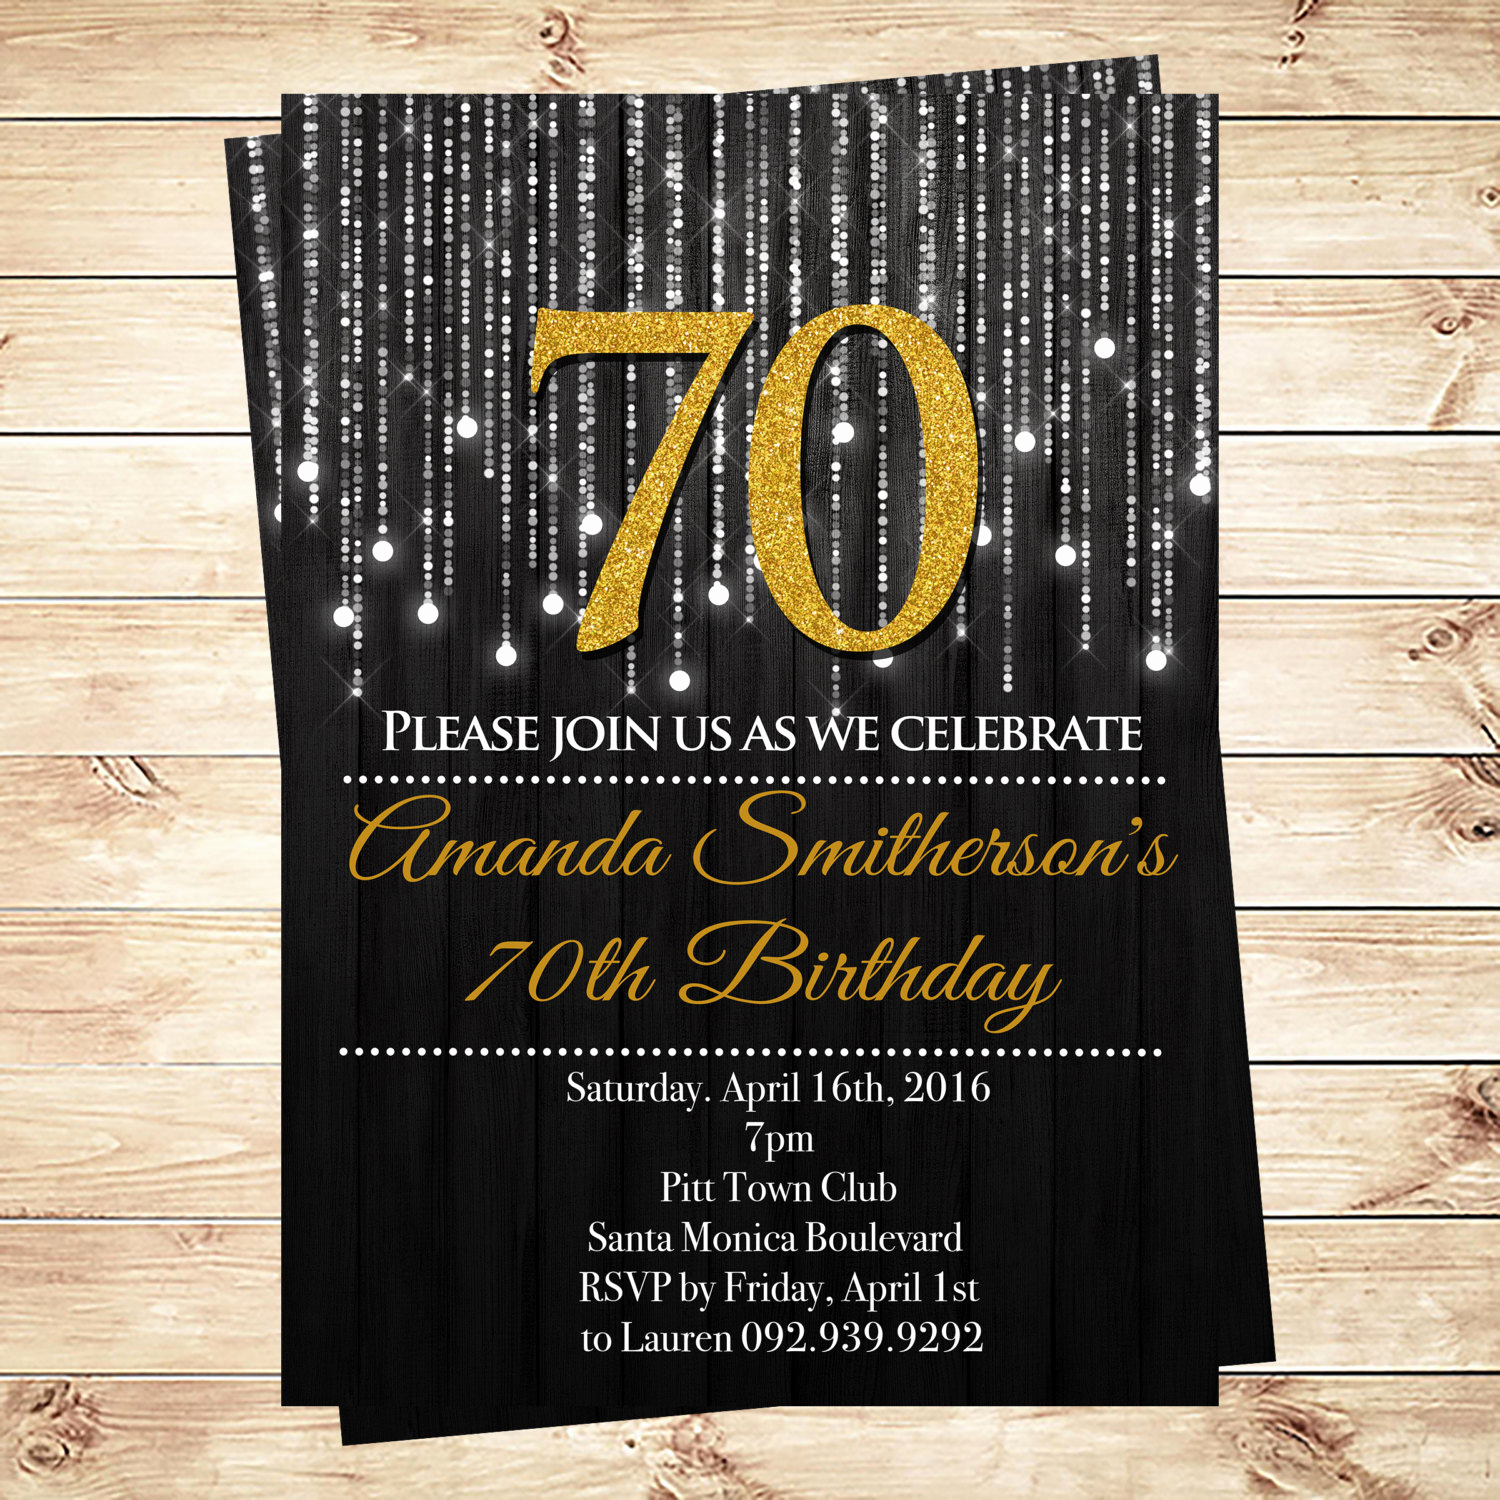 Black and Gold Invitation Template Beautiful Black and Gold 70th Birthday Invitations by Diypartyinvitation